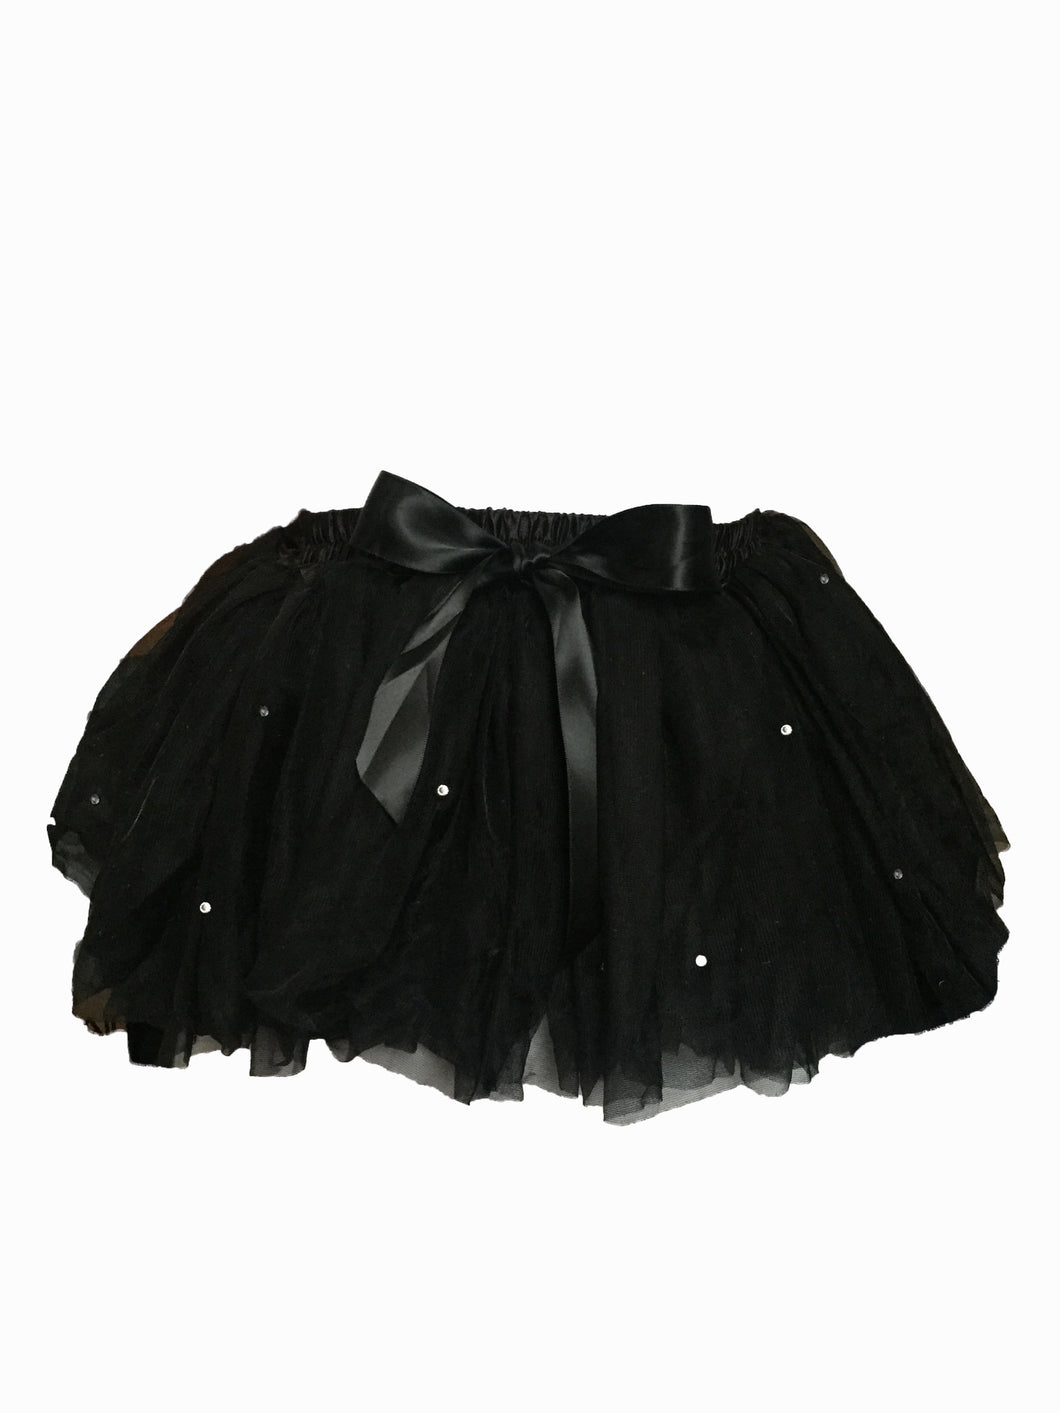 Girls Sparkly Black Tutu